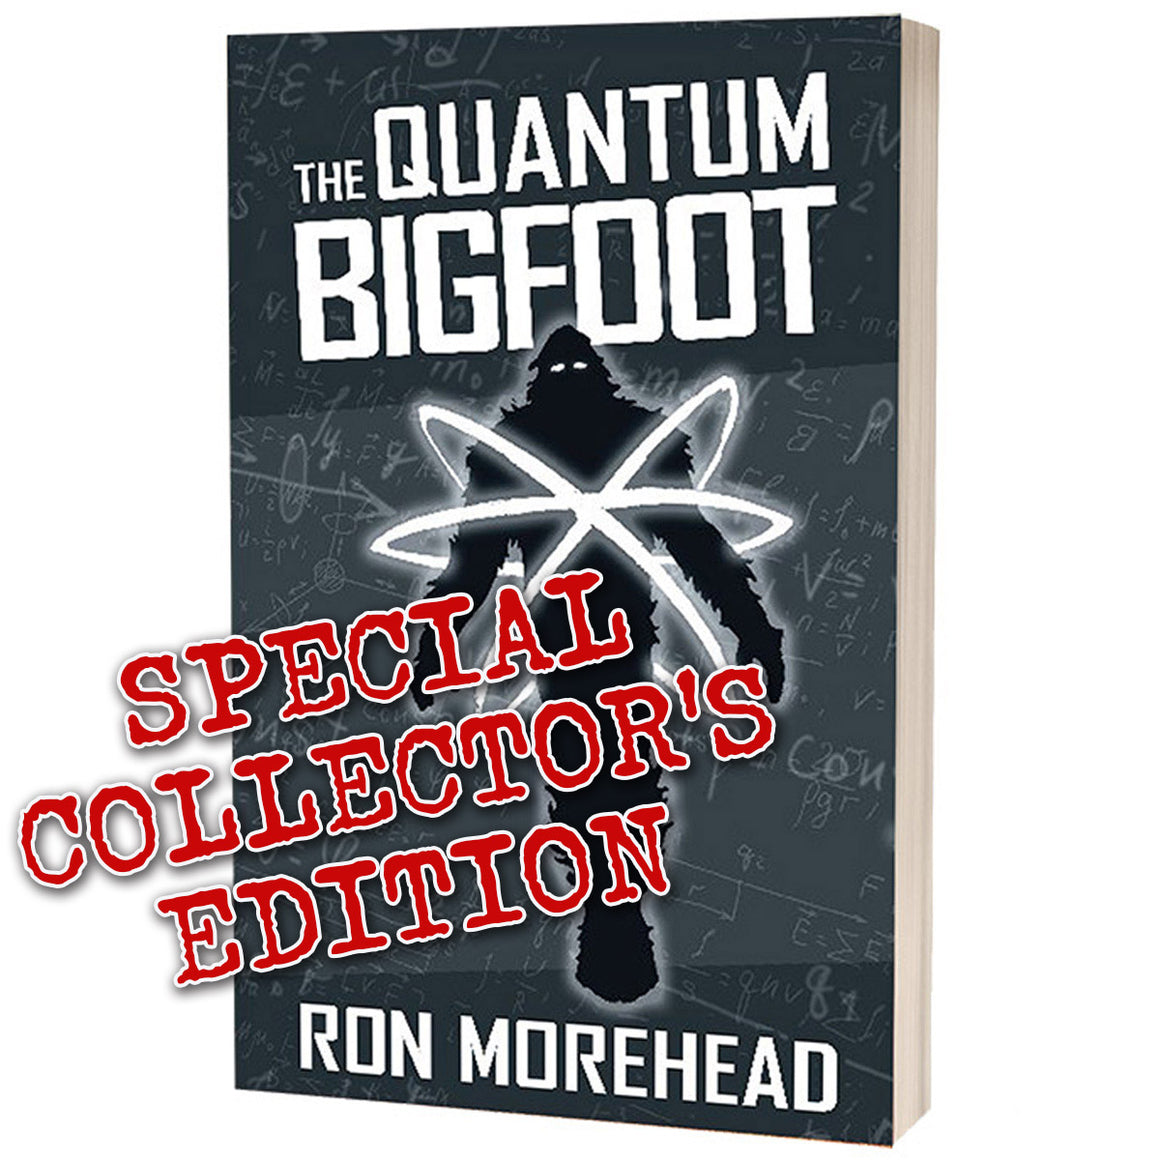 Collector's Edition: The Quantum Bigfoot